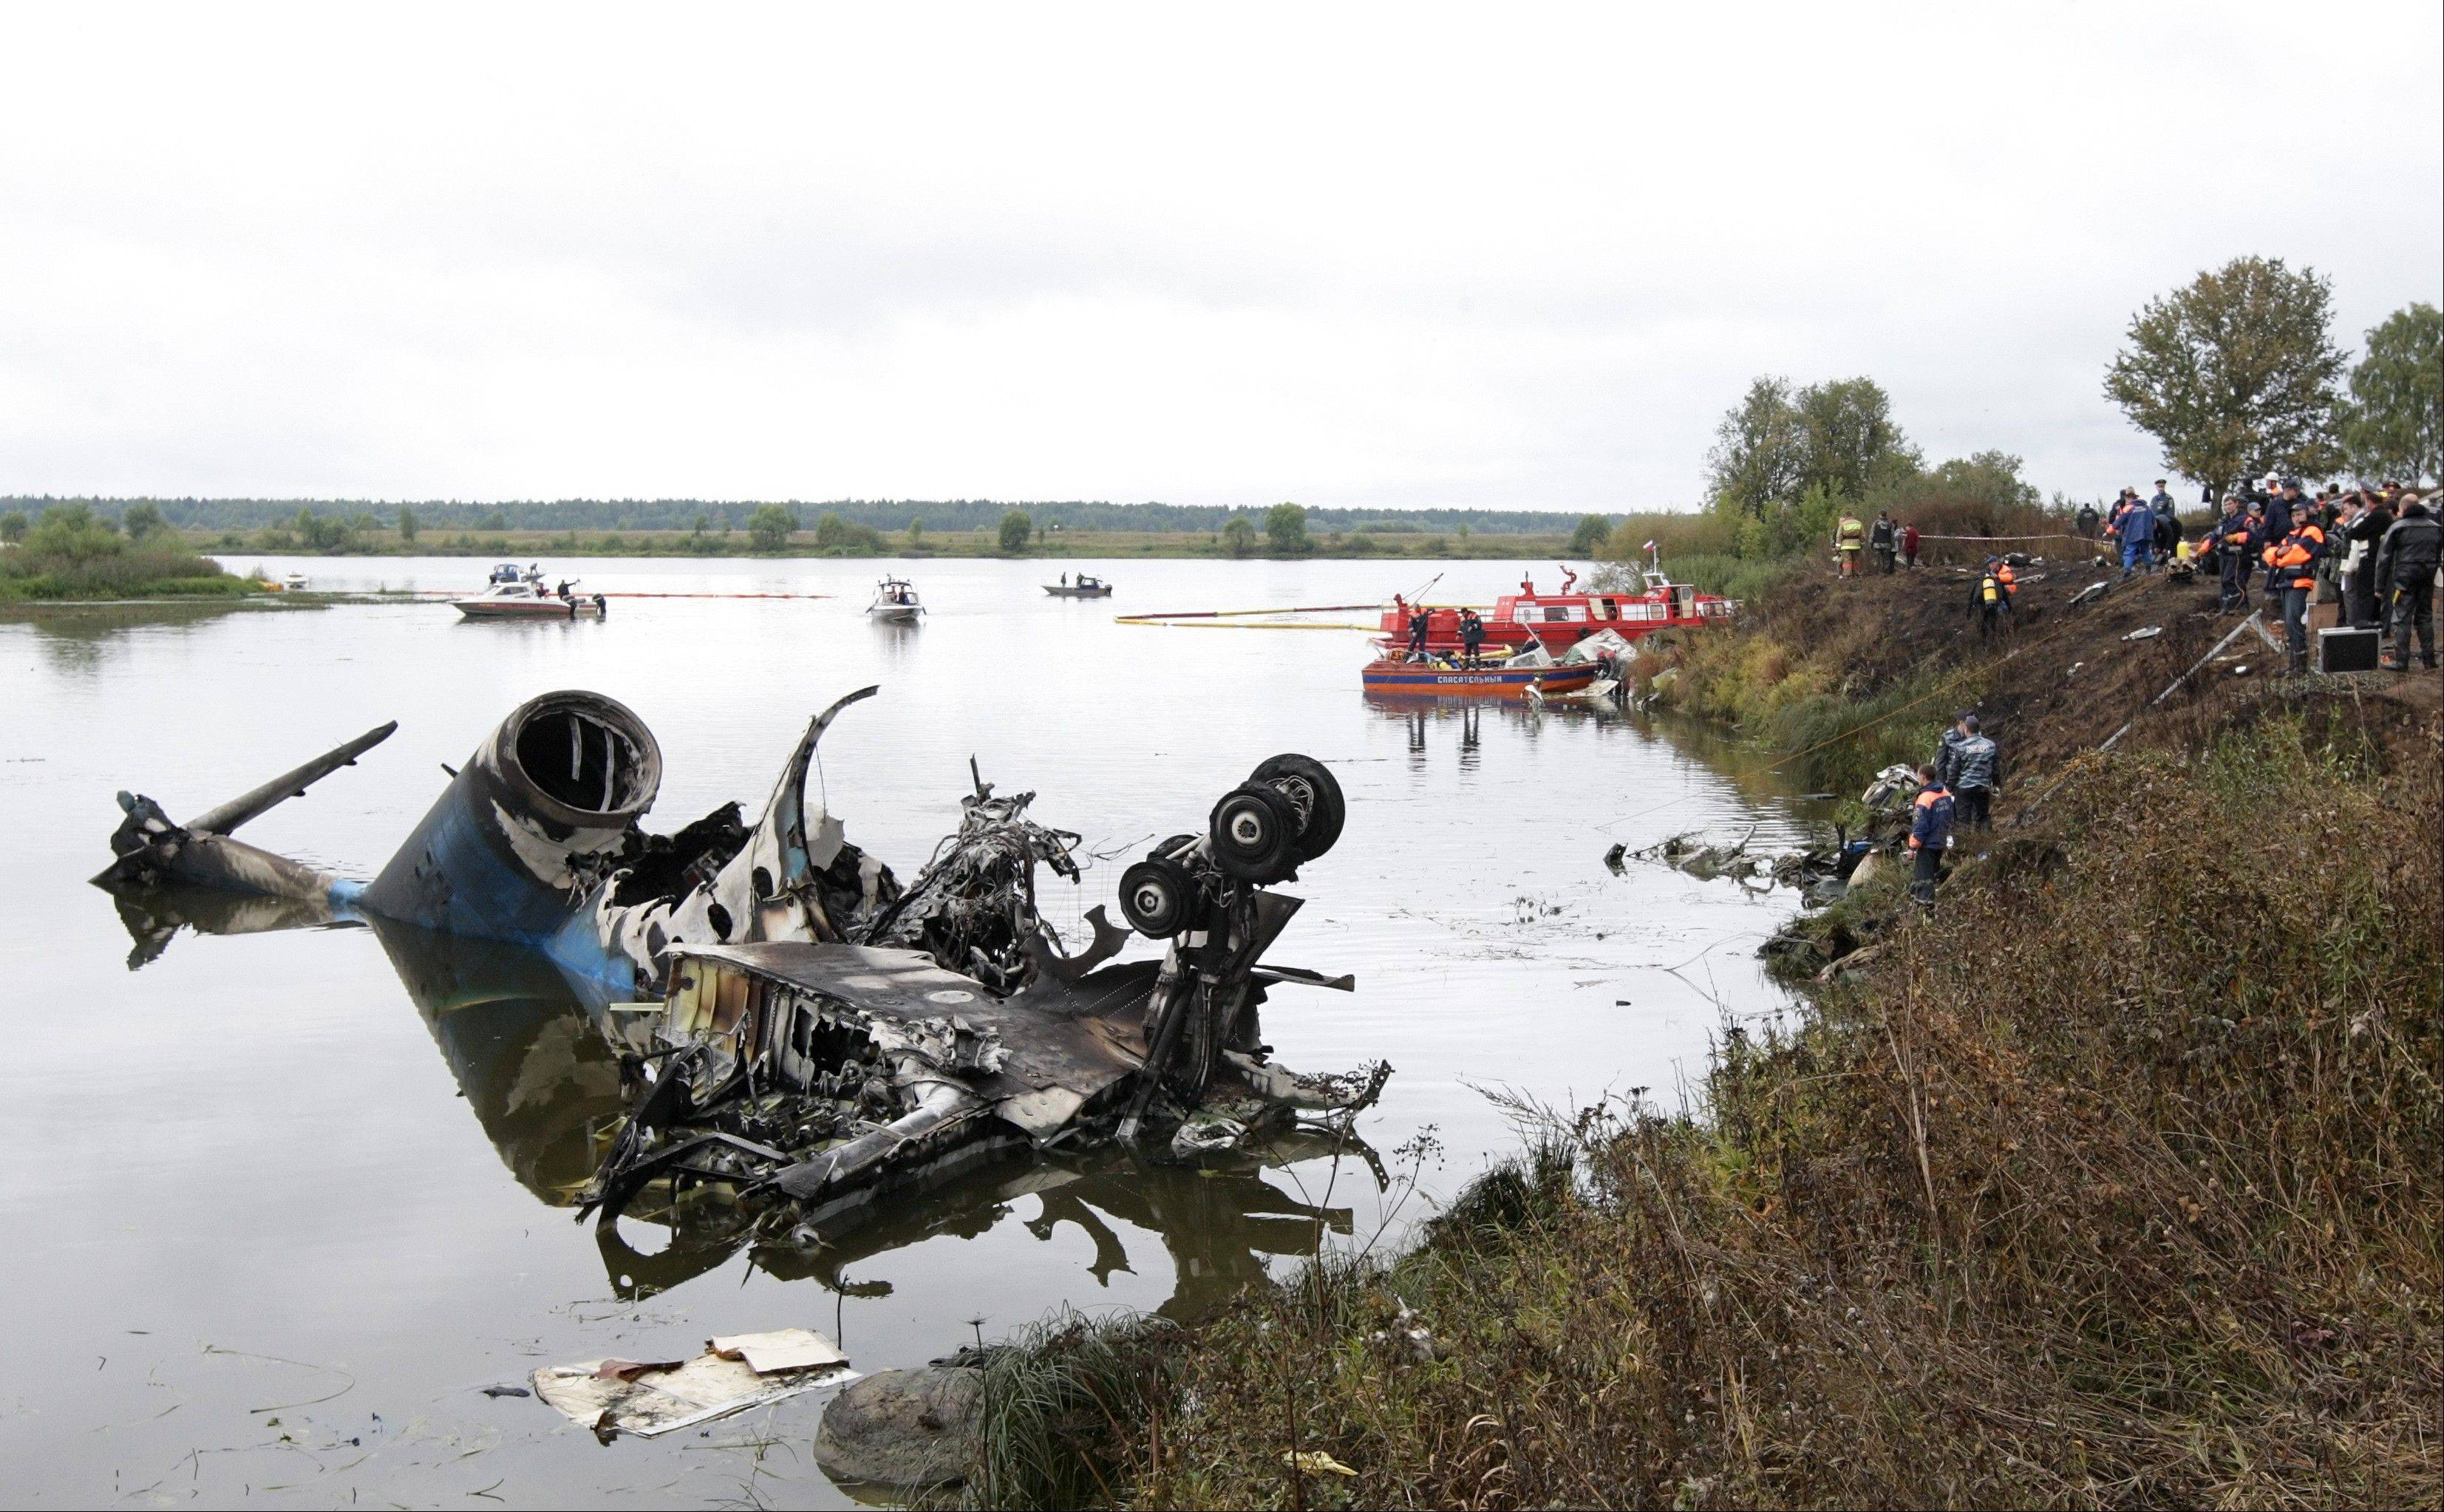 General view of a plane crash site near Yaroslavl, on the Volga River about 150 miles northeast of Moscow. Associated Press